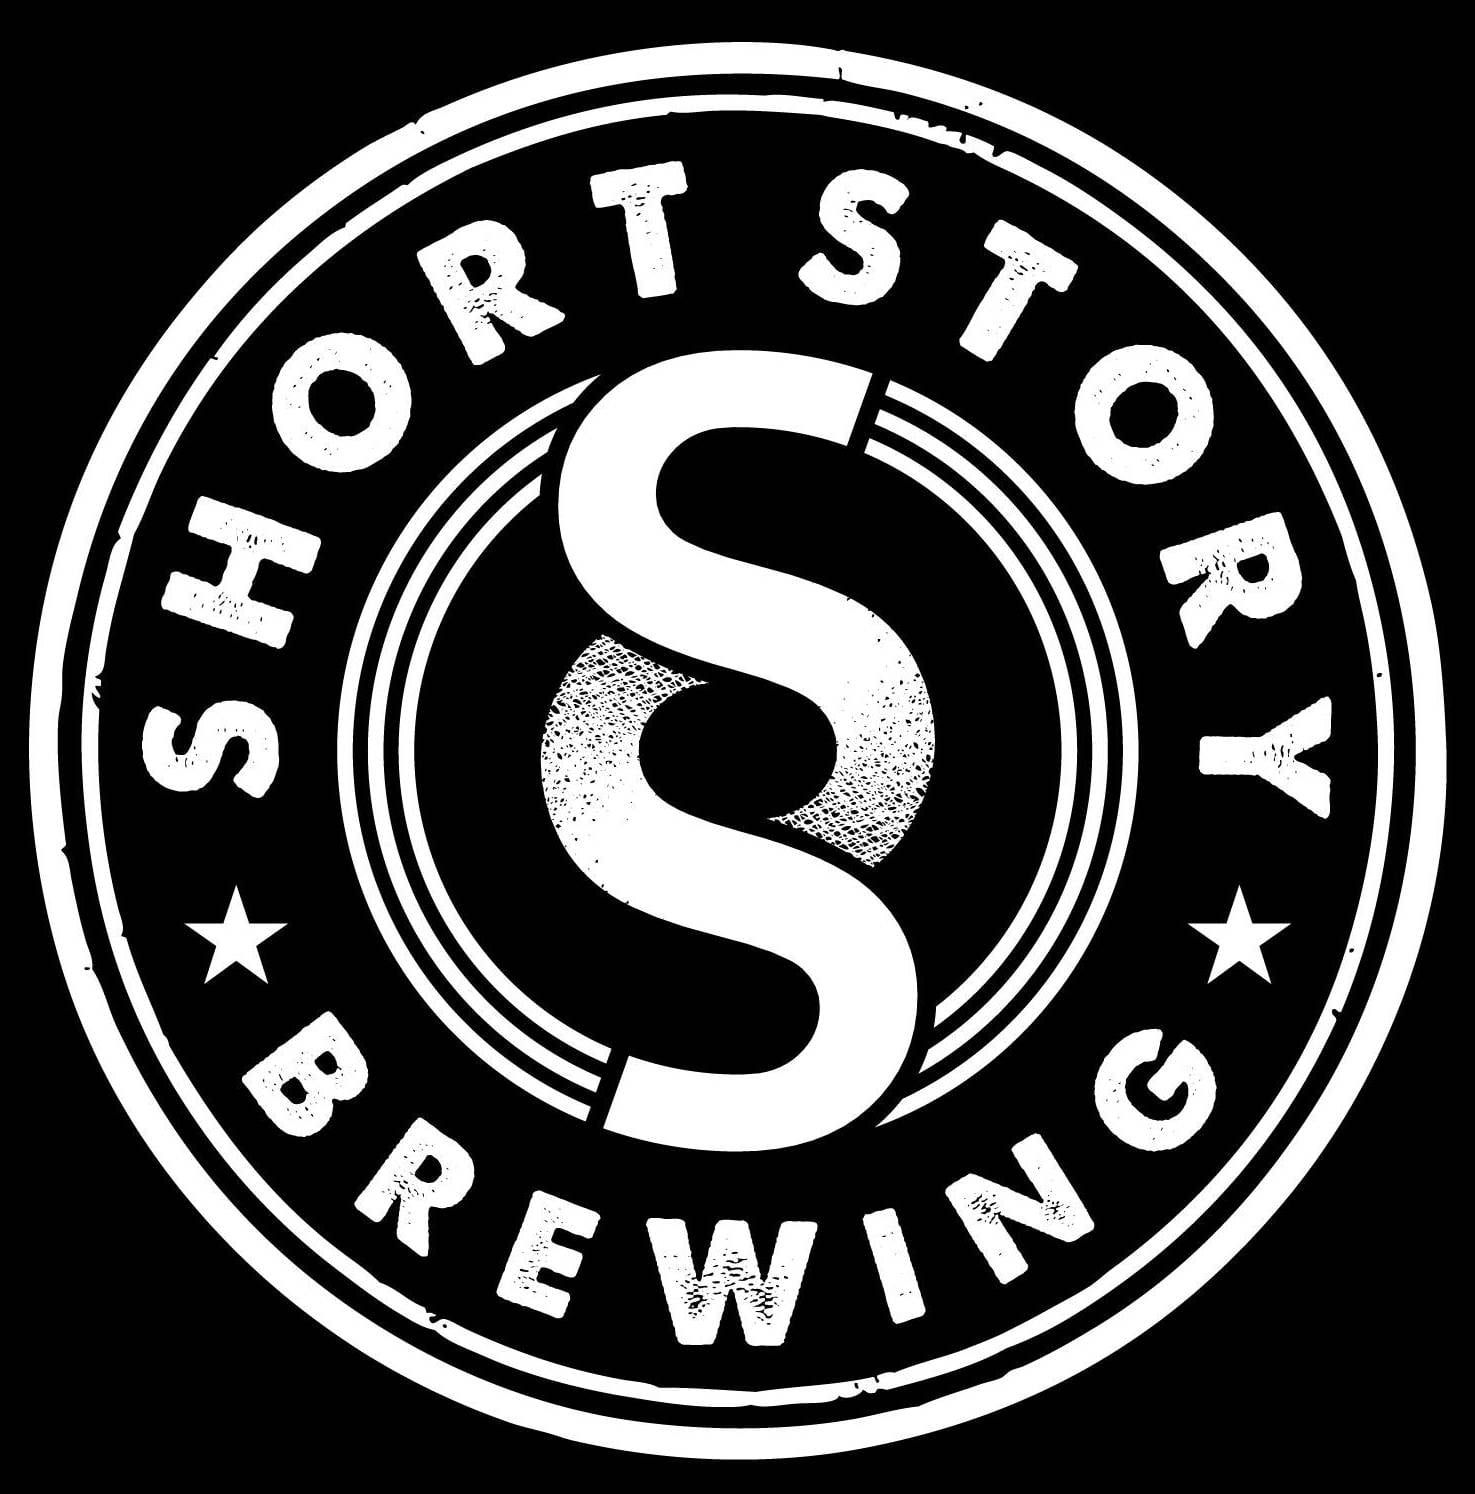 breweries planning to open in 2017 brilliant stream